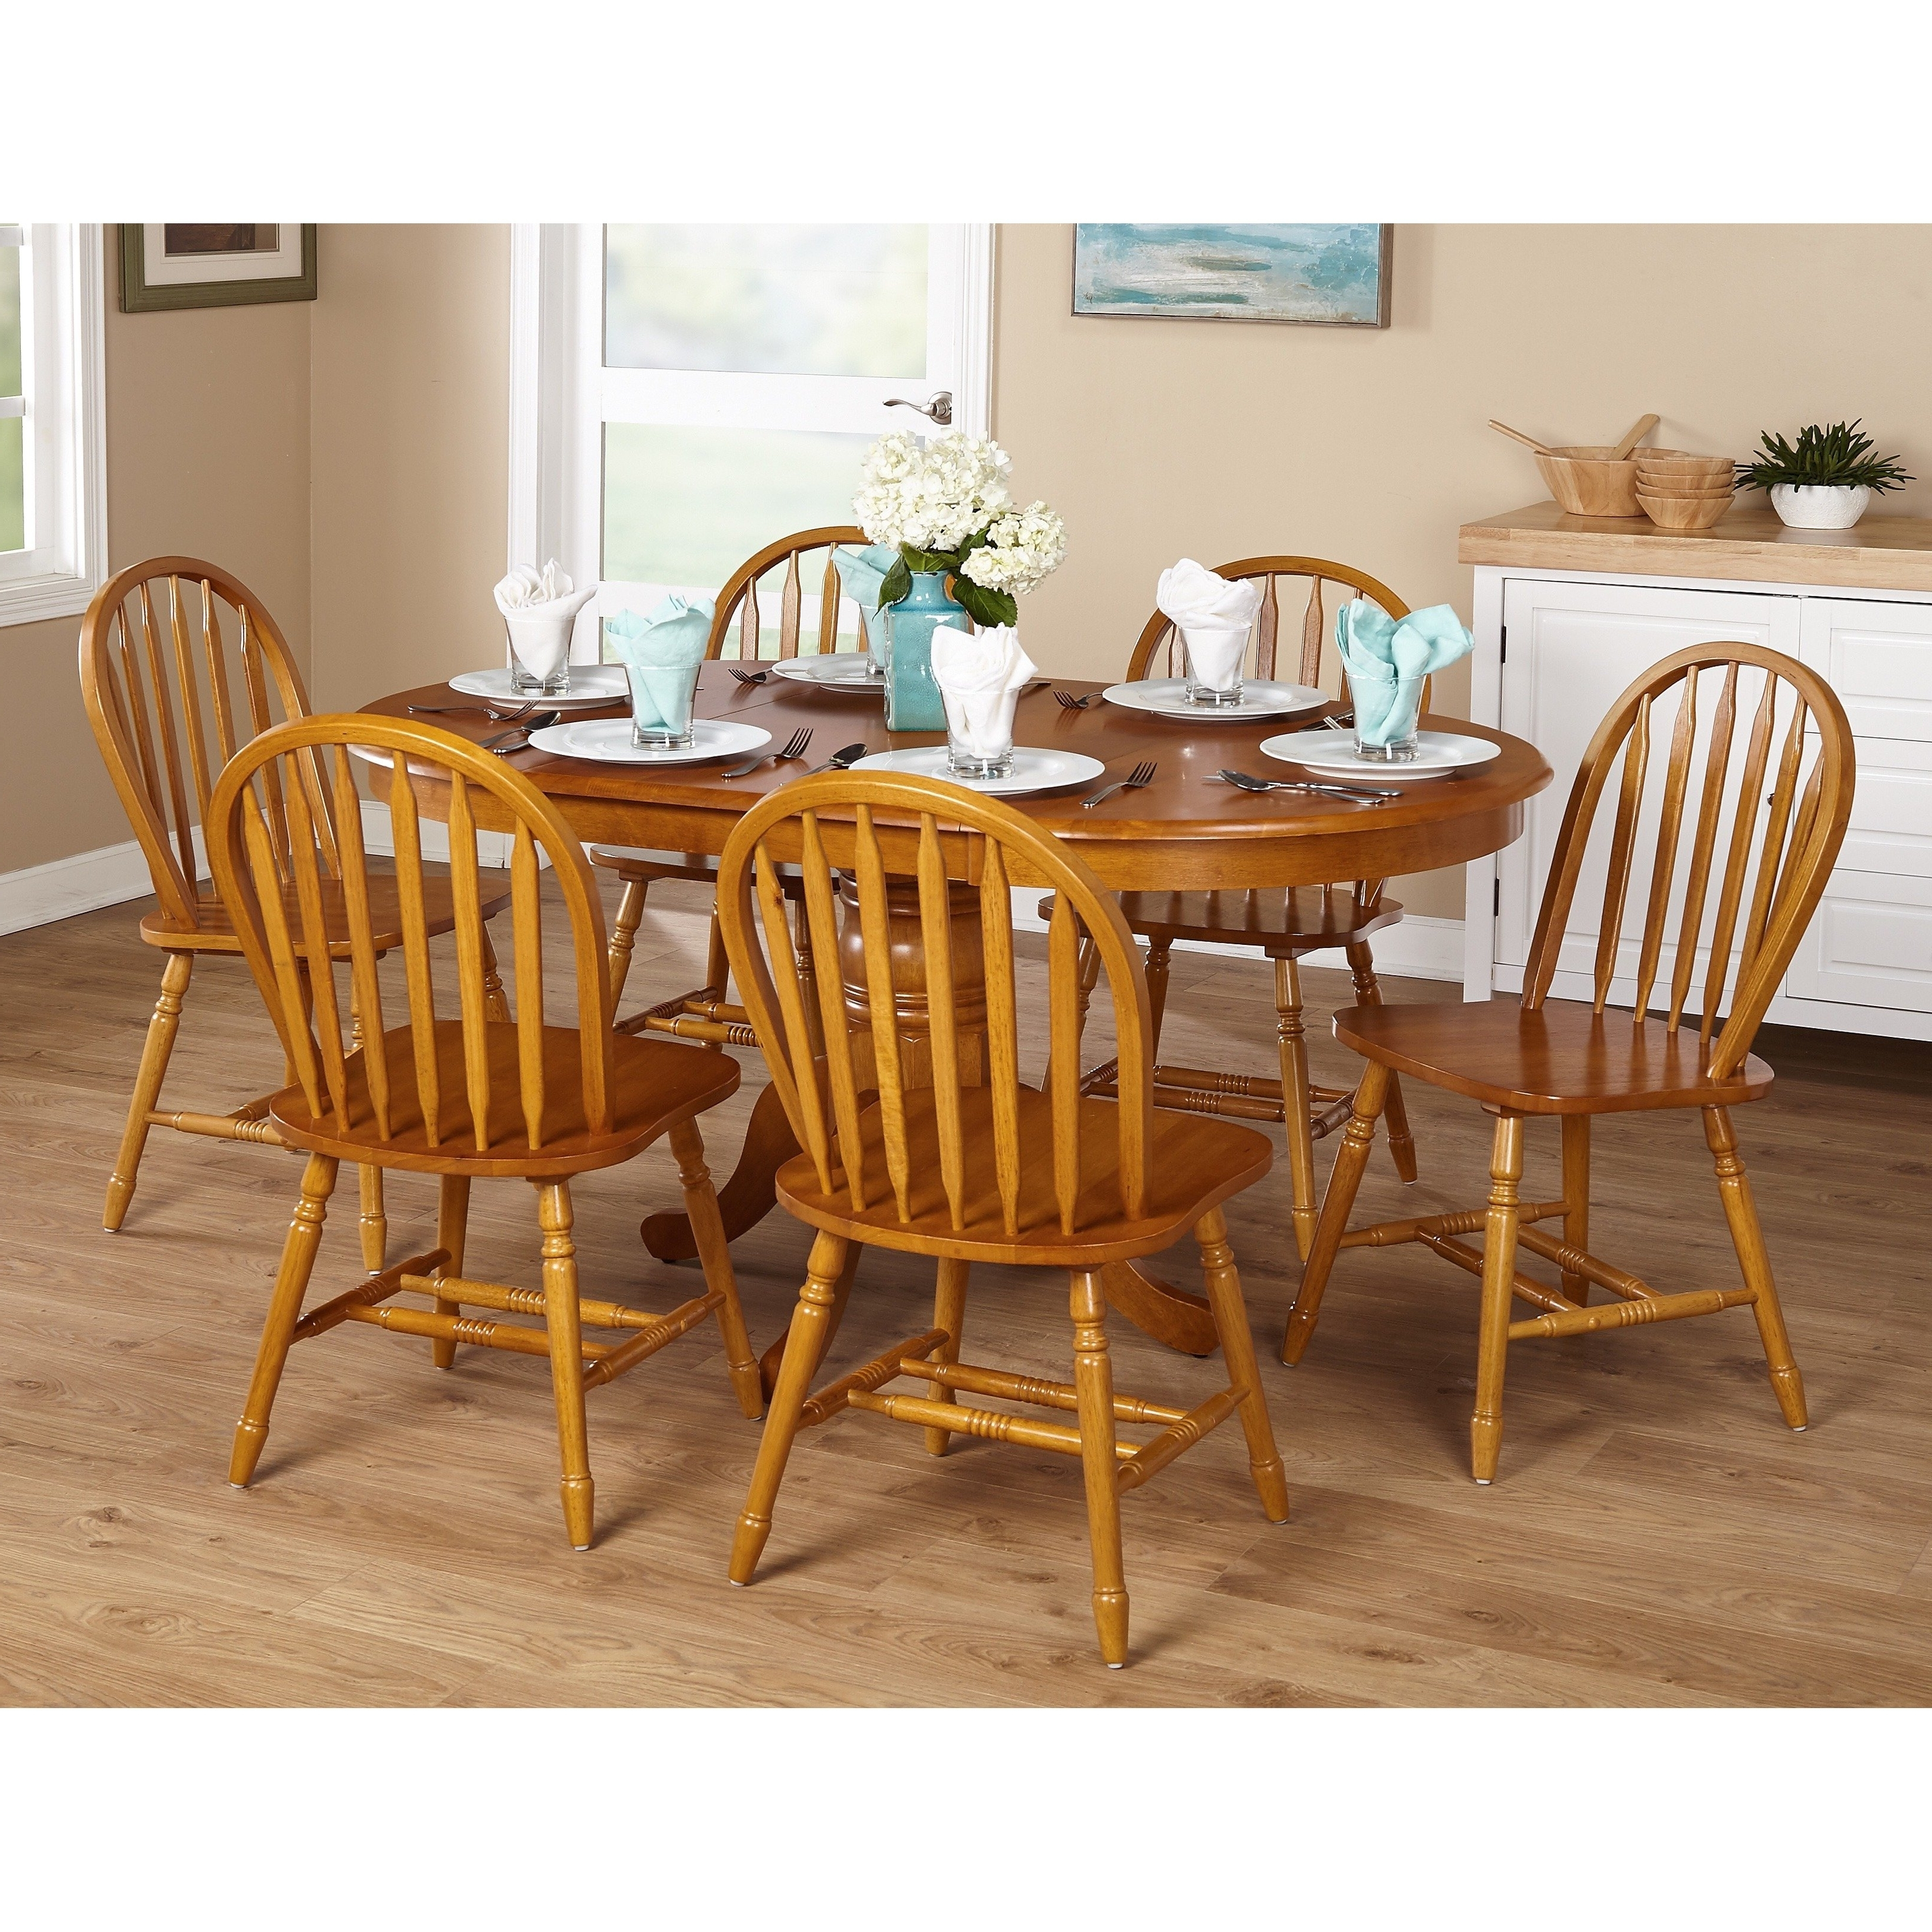 Oak Dining Sets Within Most Recent Shop Simple Living Farmhouse 5 Or 7 Piece Oak Dining Set – Free (View 19 of 25)